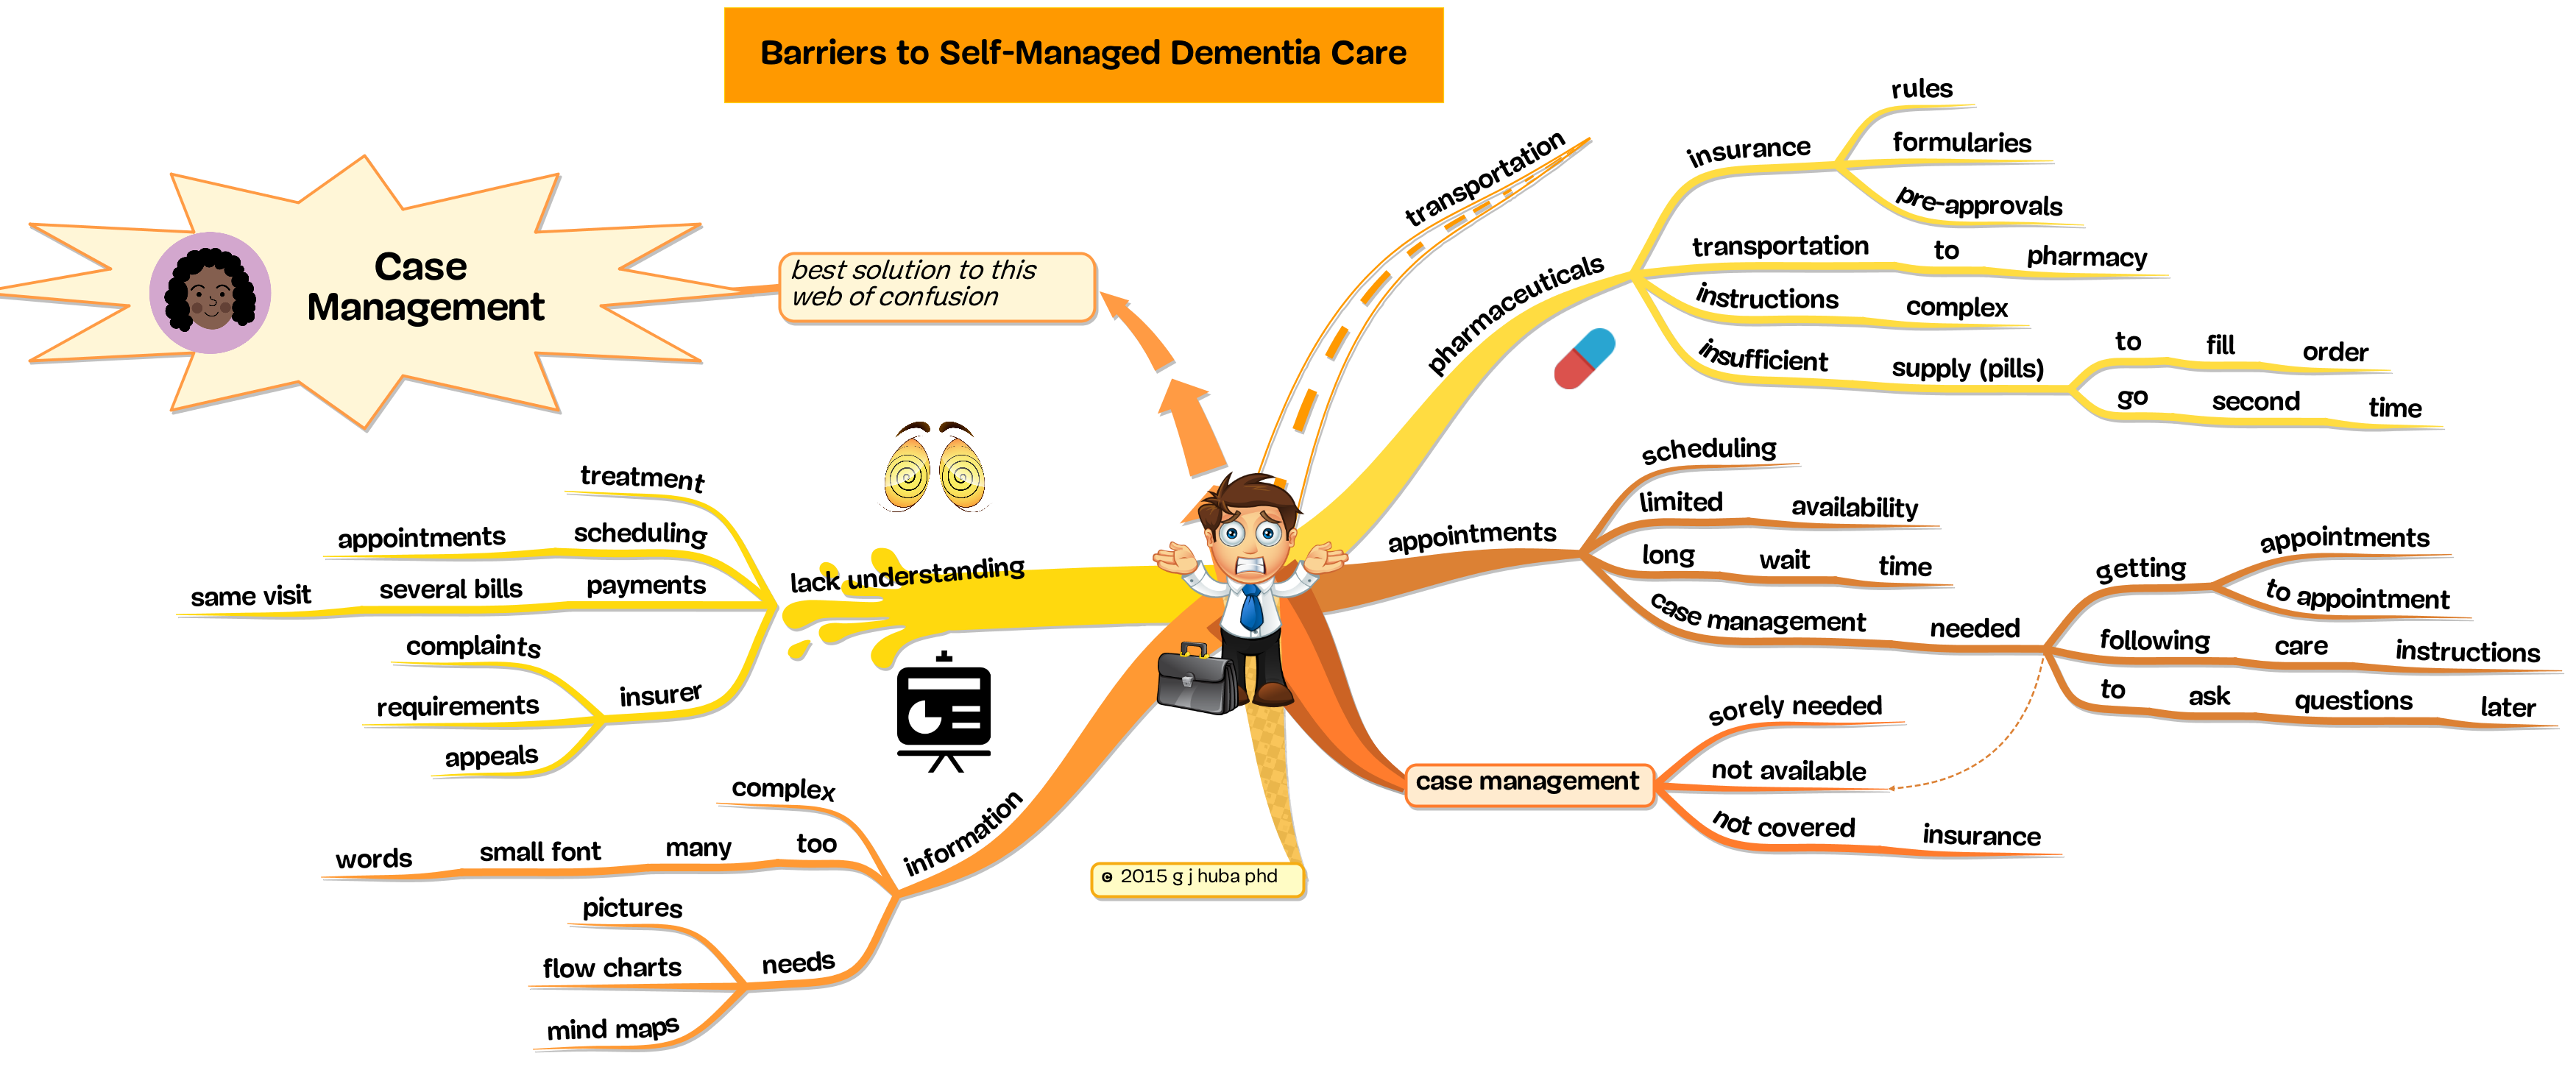 Barriers to Dementia Care